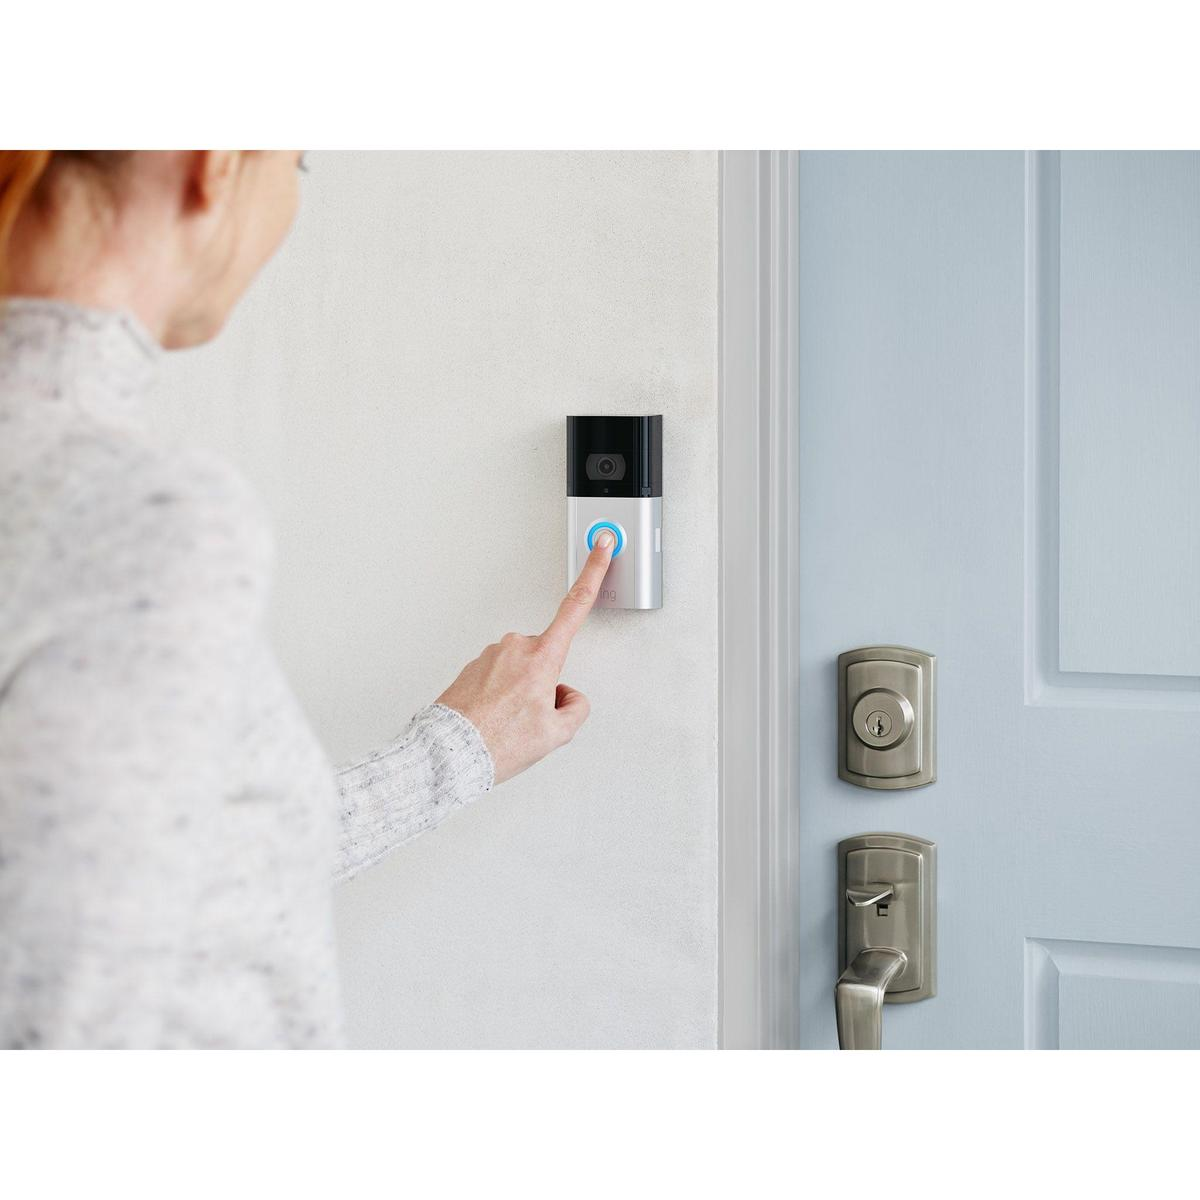 2019-lifestyle-rvd3p-womanringingdoorbell-bluedoor-1.jpg